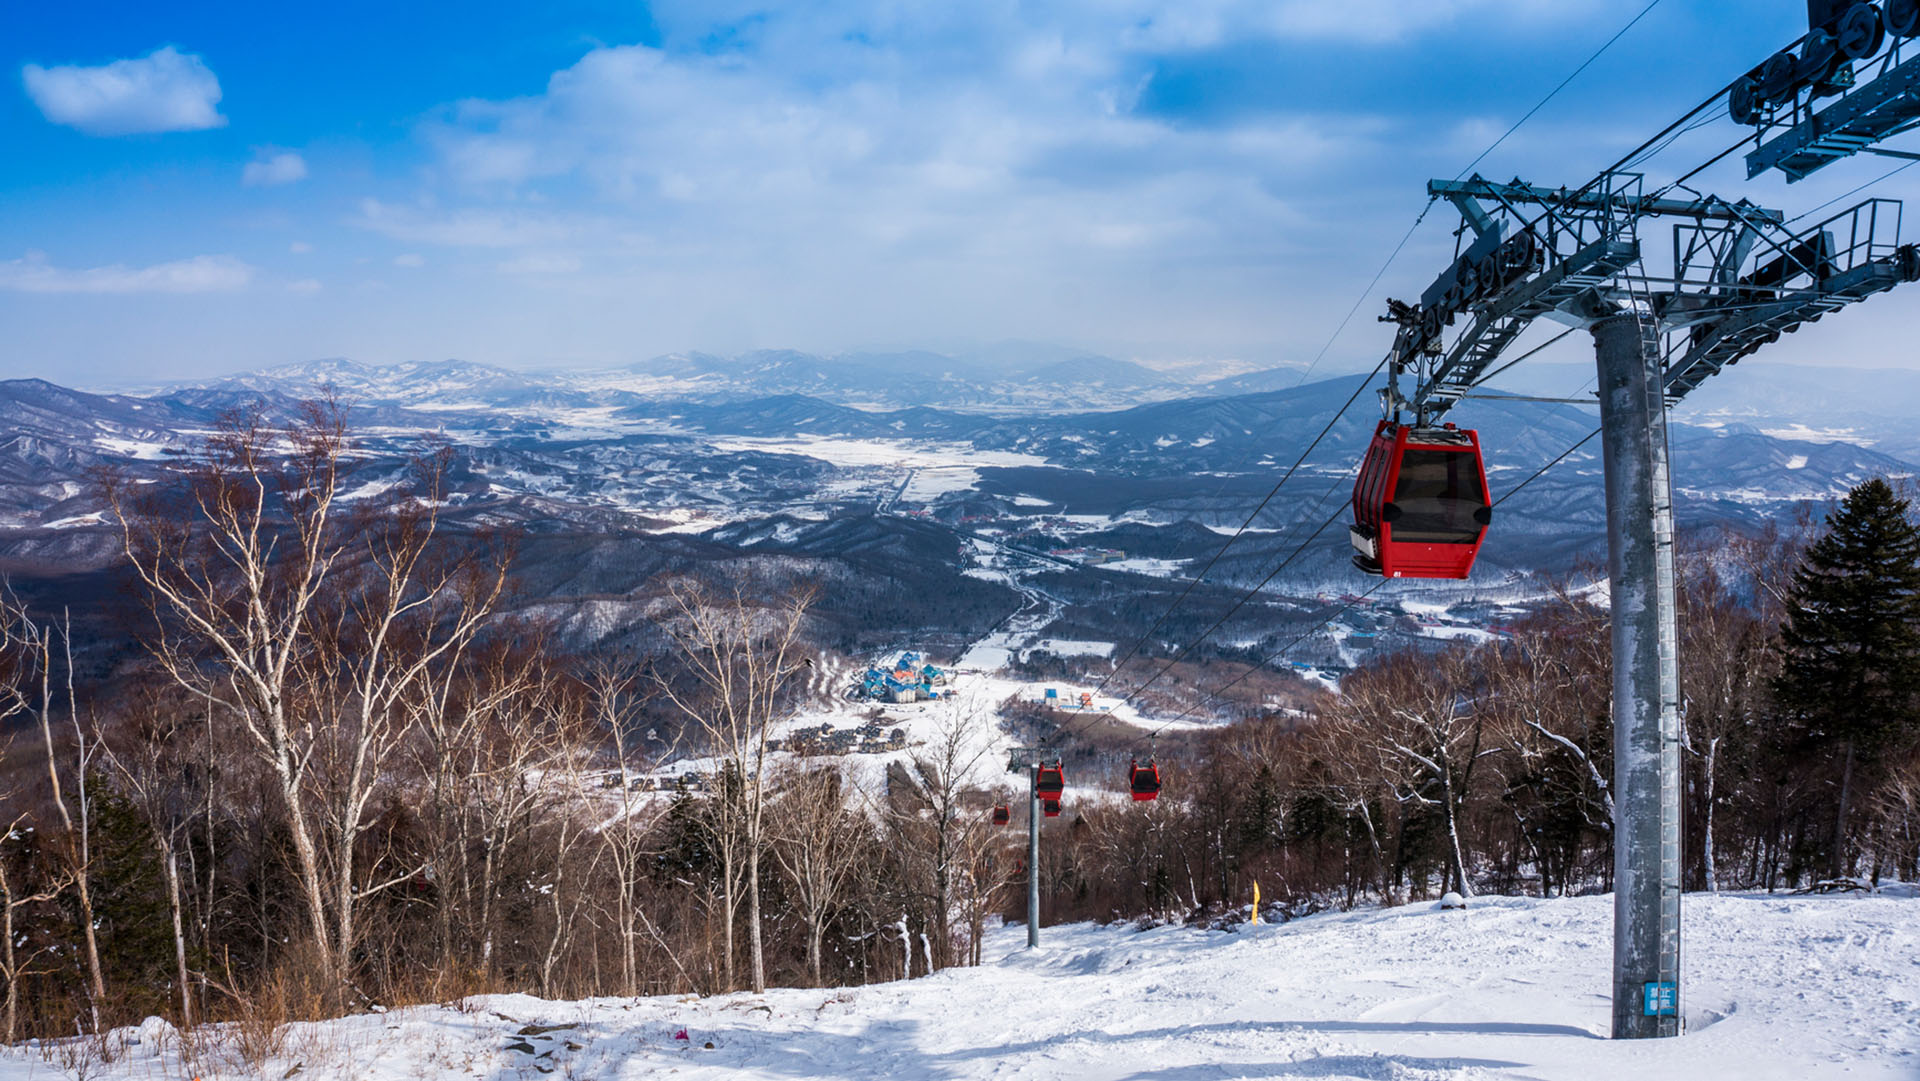 Skiing is growing rapidly in popularity in China